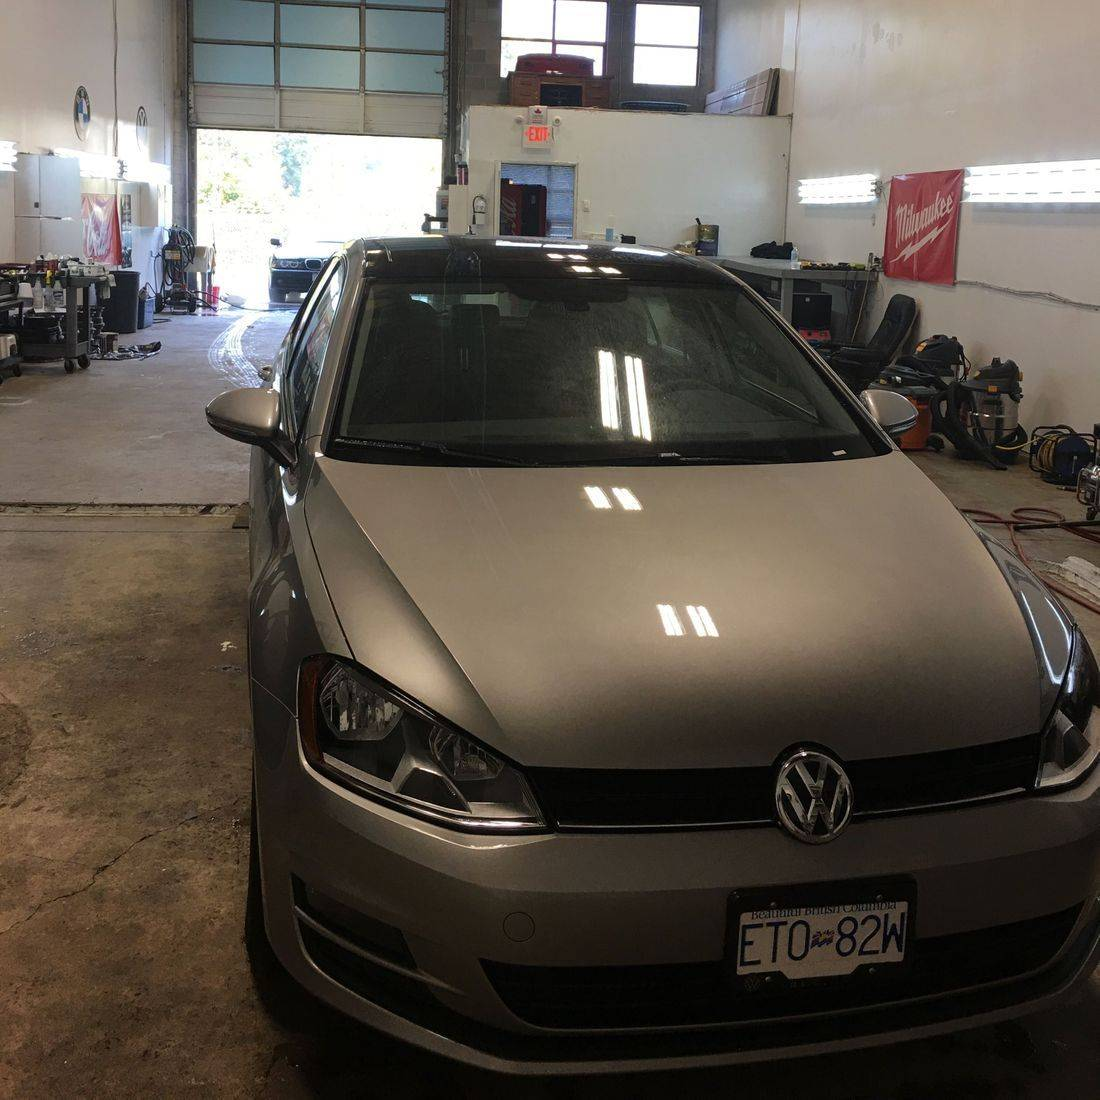 VW Golf, New car protection, rust proofing,Squamish, Whistler, Sea to Sky, undercoating, detailing